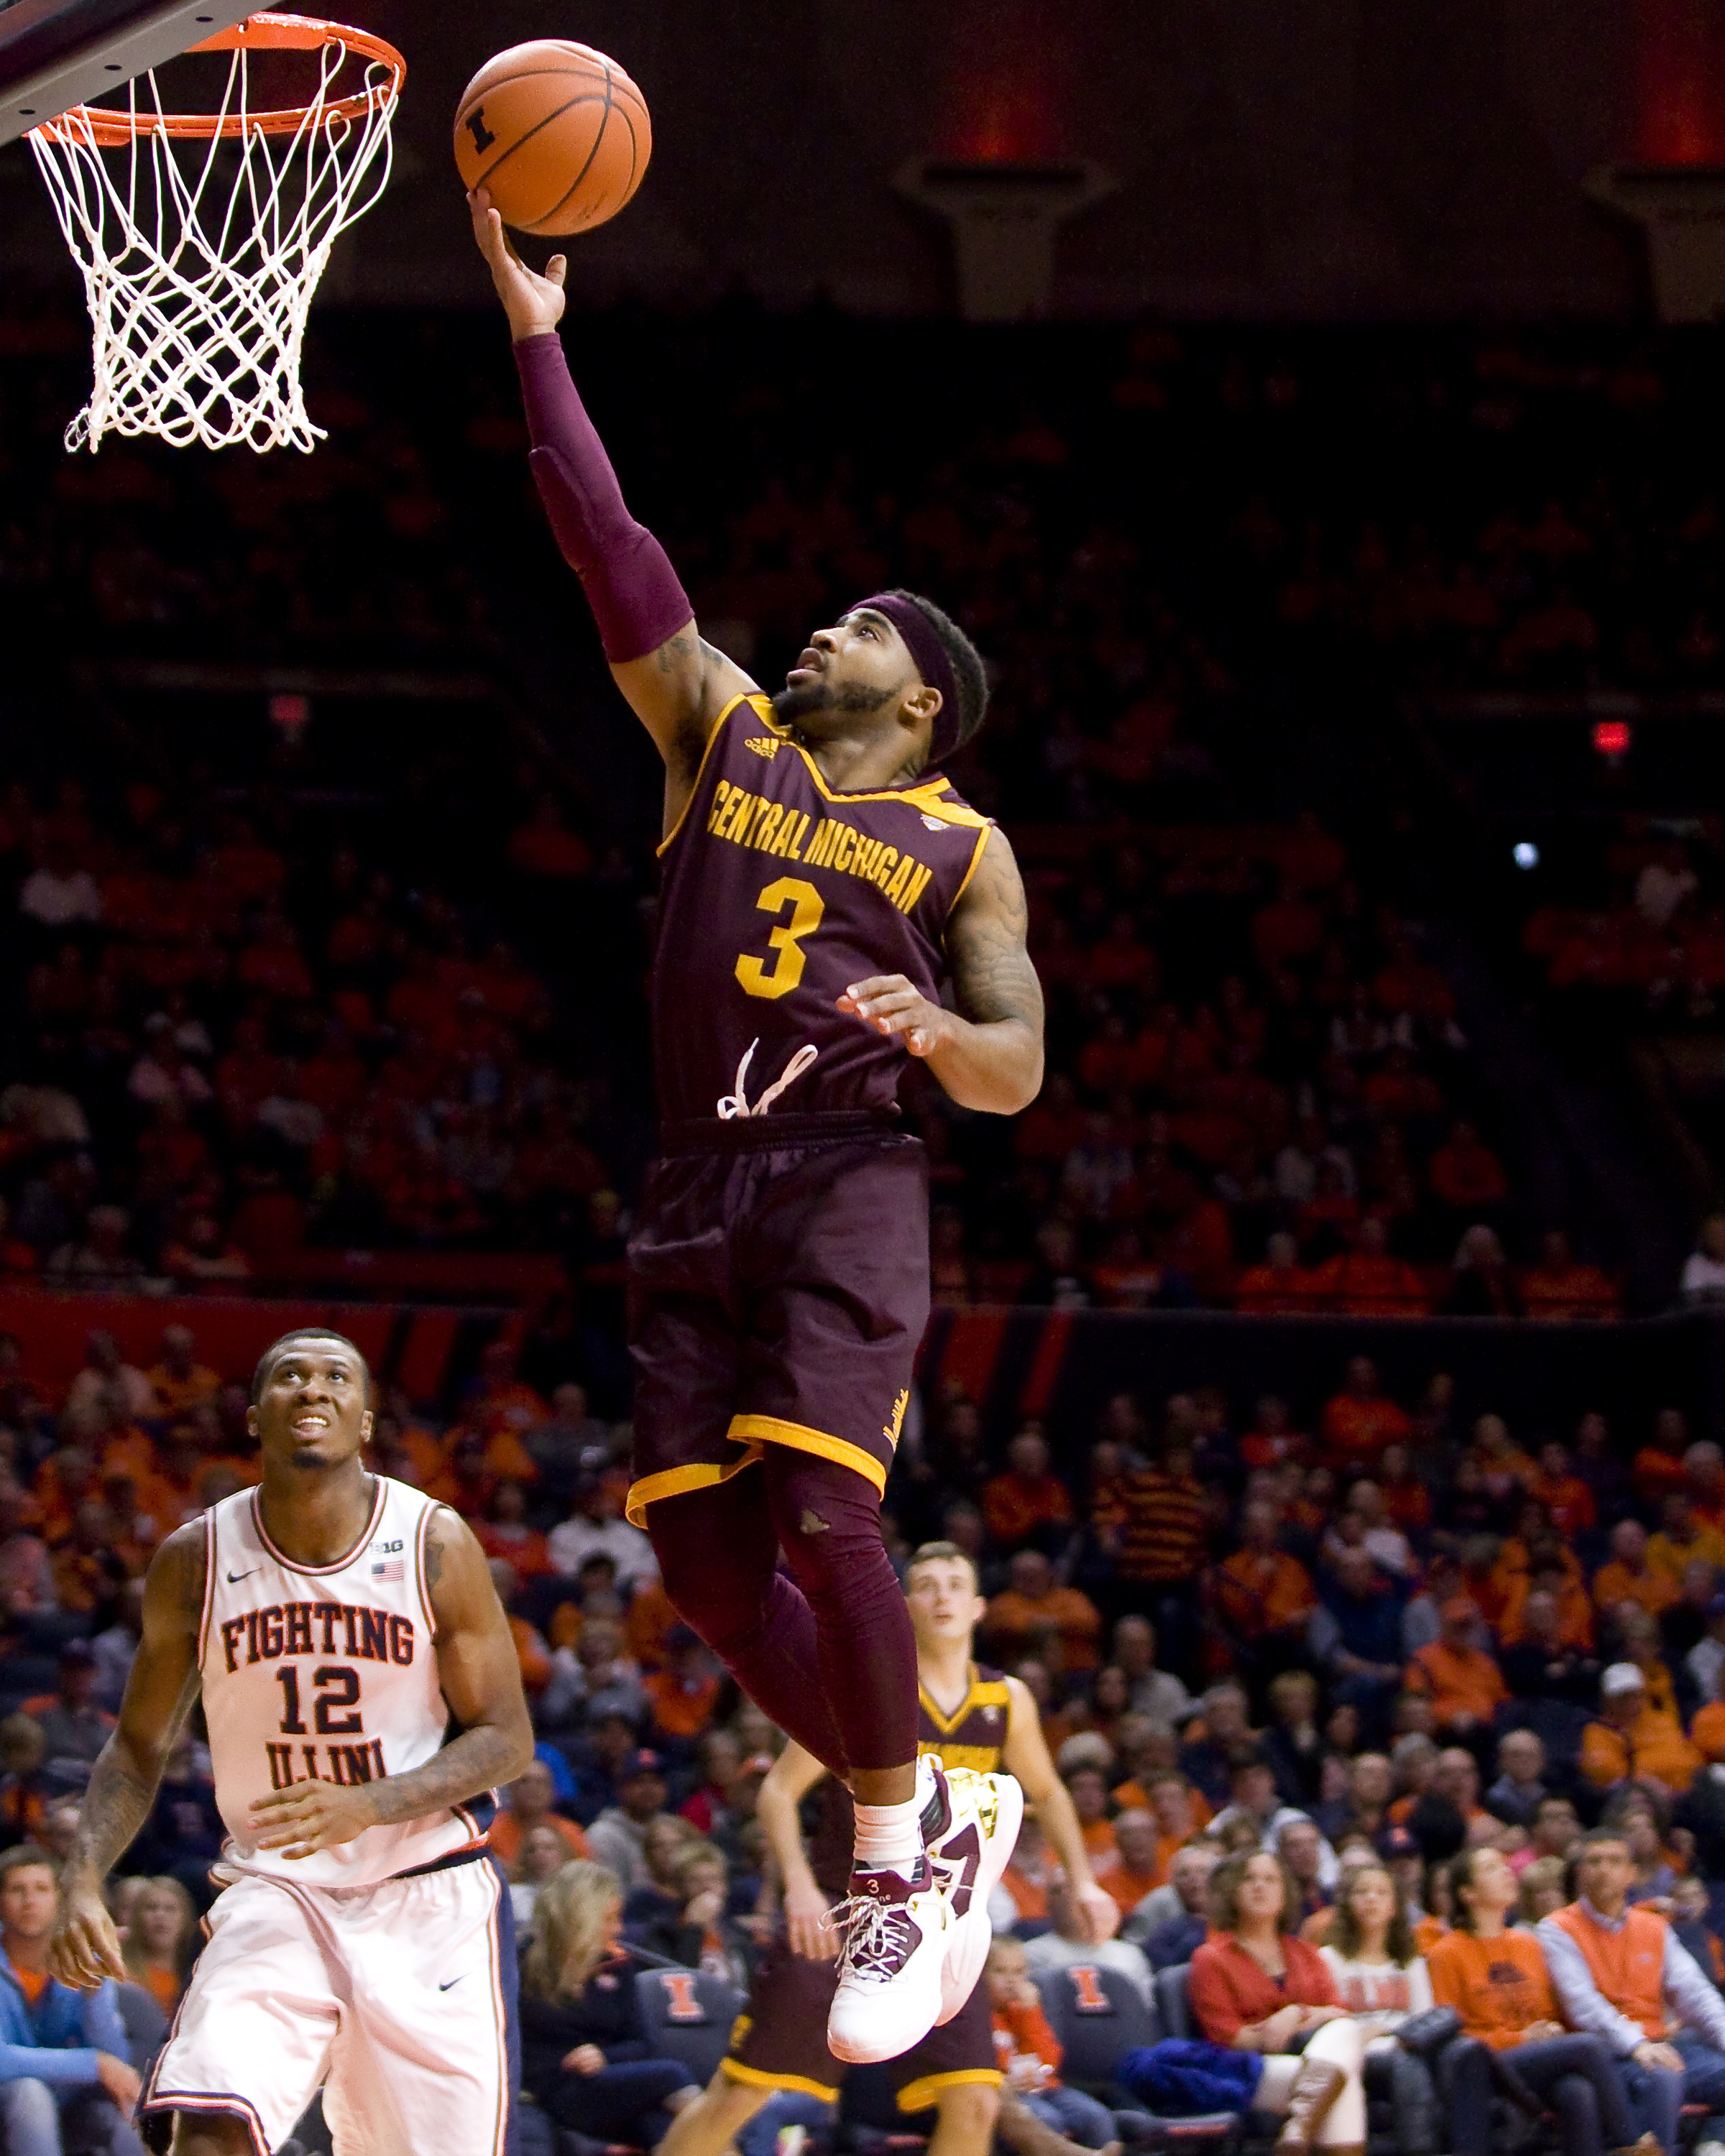 9737381-ncaa-basketball-central-michigan-at-illinois